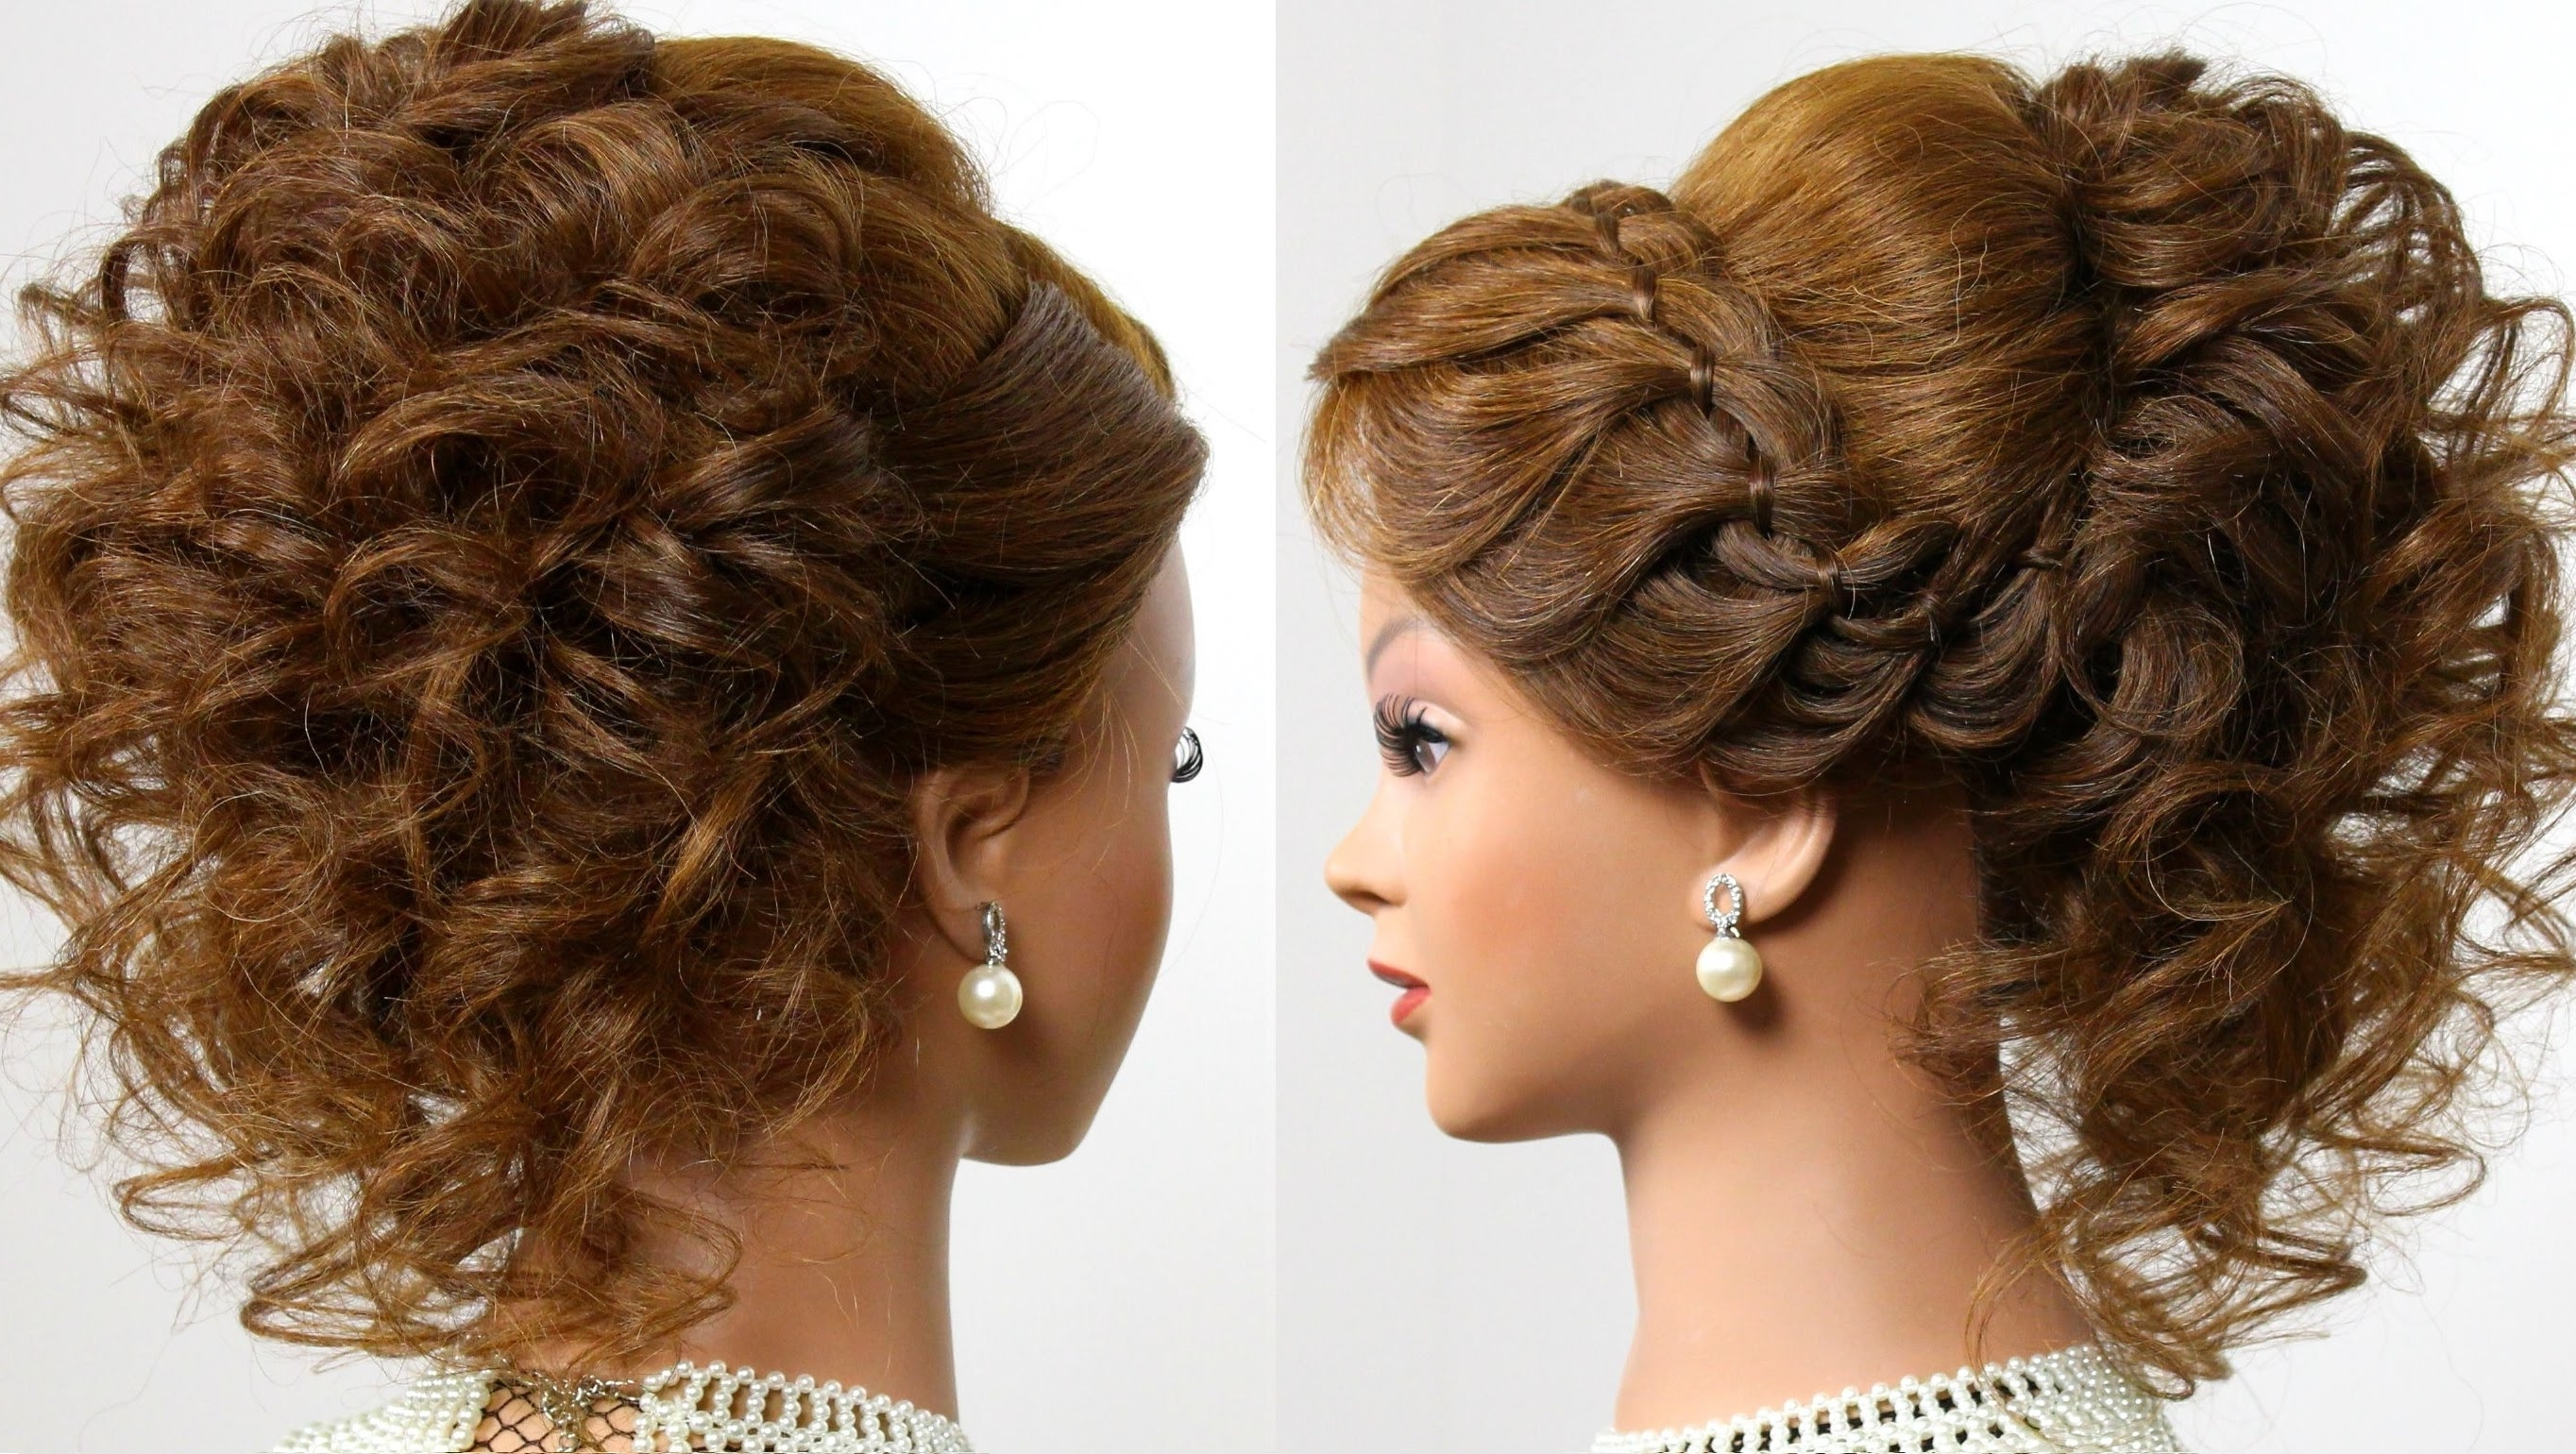 Curly Wedding Prom Hairstyle For Long Hair Sensational Romantic Pertaining To Fancy Updo Hairstyles For Medium Hair (View 4 of 15)